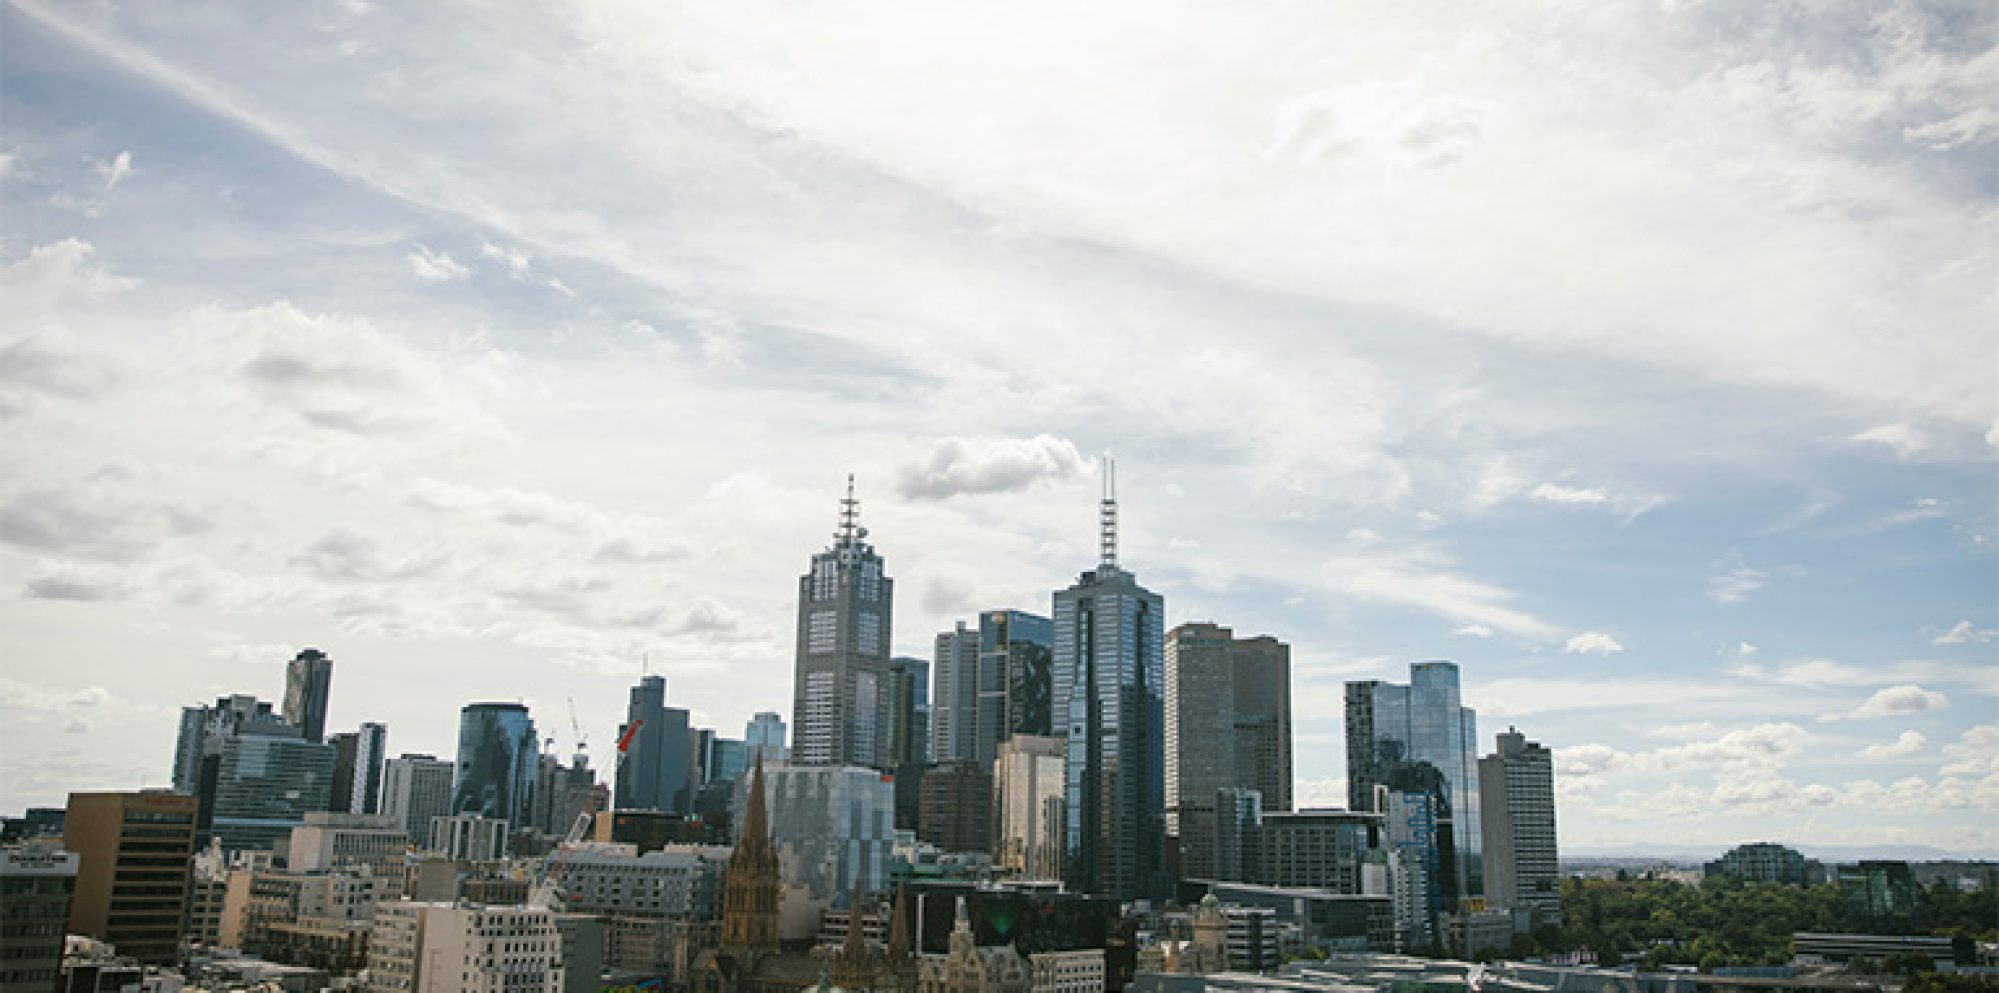 How to design seo-friendly website architecture and layout in melbourne